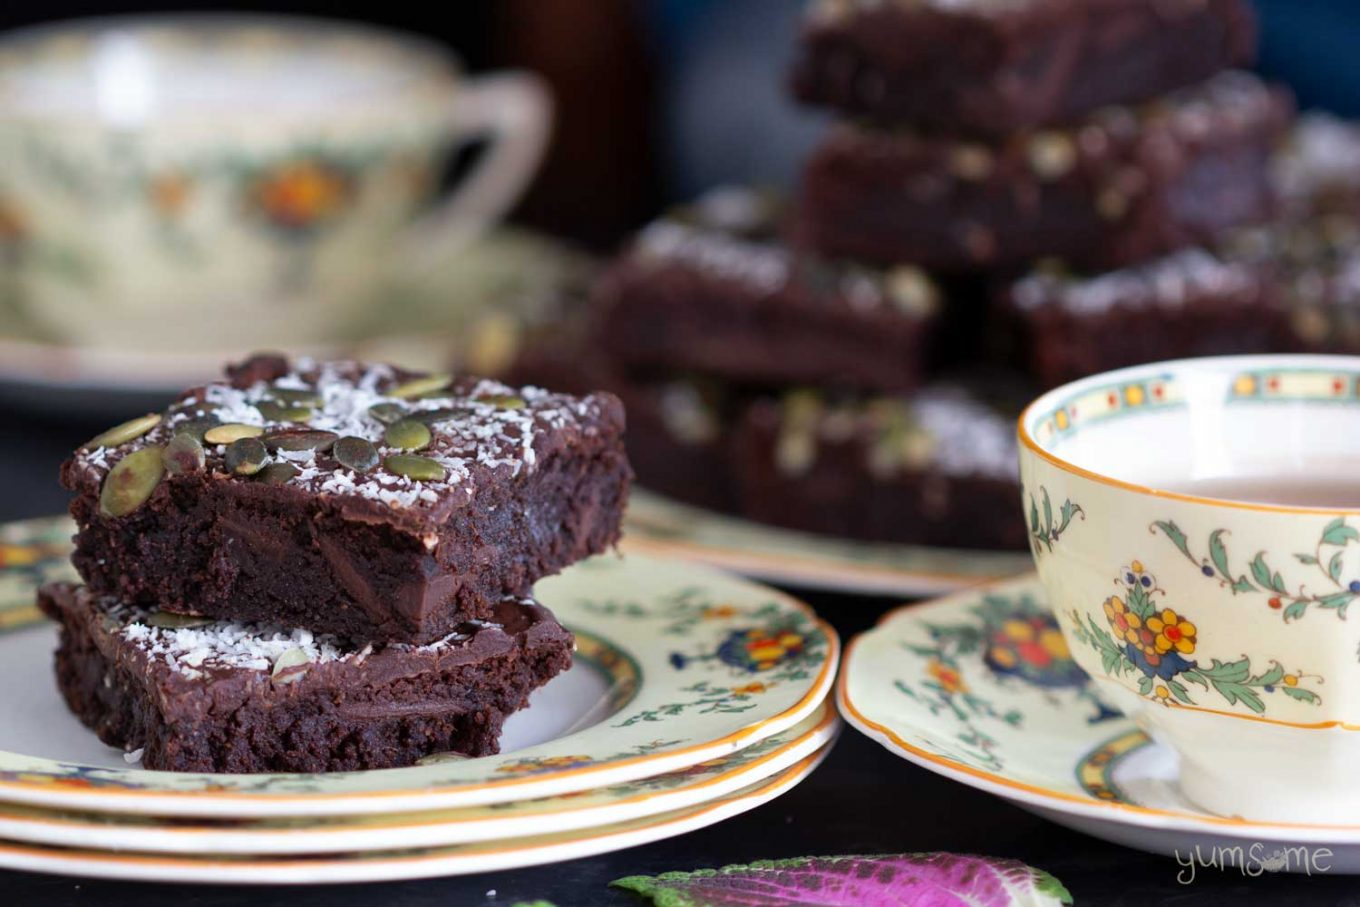 Fudge brownies and a cup of tea.